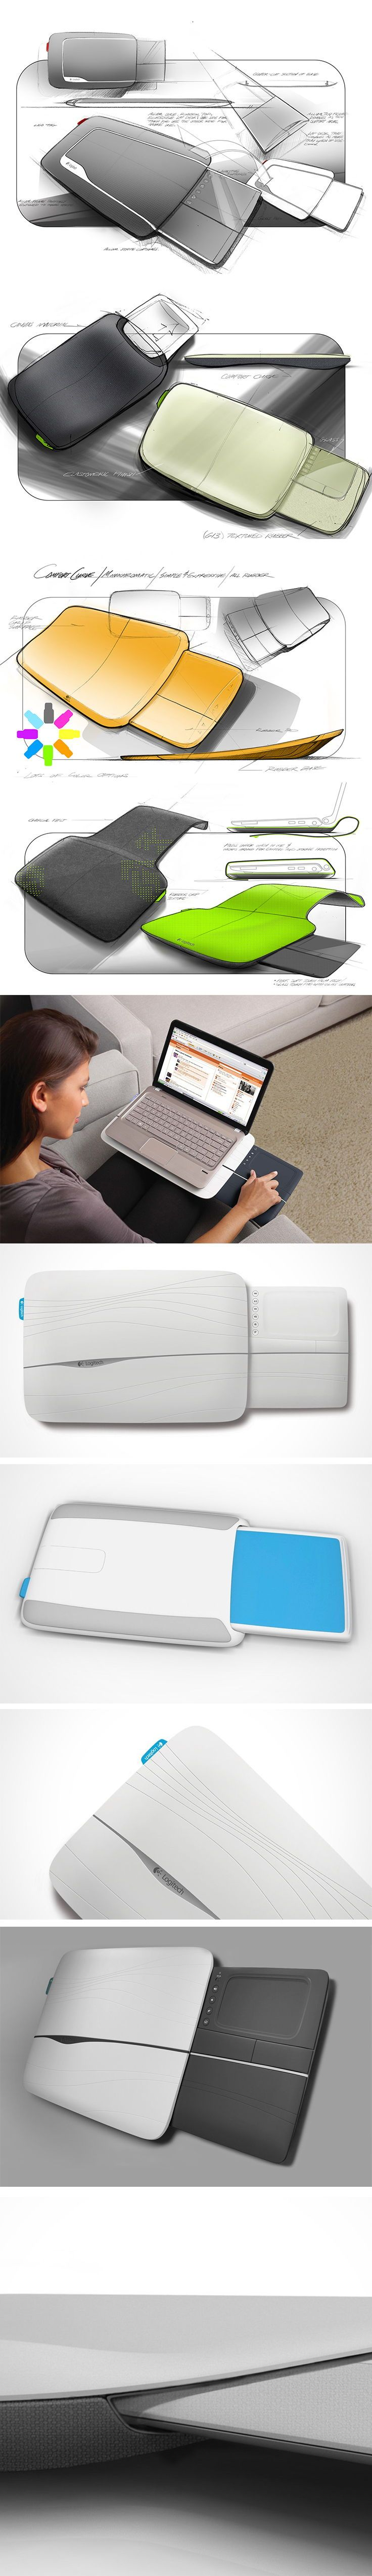 Aptly named the Logitech Lapdesk, it's the latest concept from designer Erik Tuft and it explores the integration of a stylus/tablet combination directly into the laptop body. It's a perfect portable solution for graphic designers, artists, architects and anyone else who works with creative software.